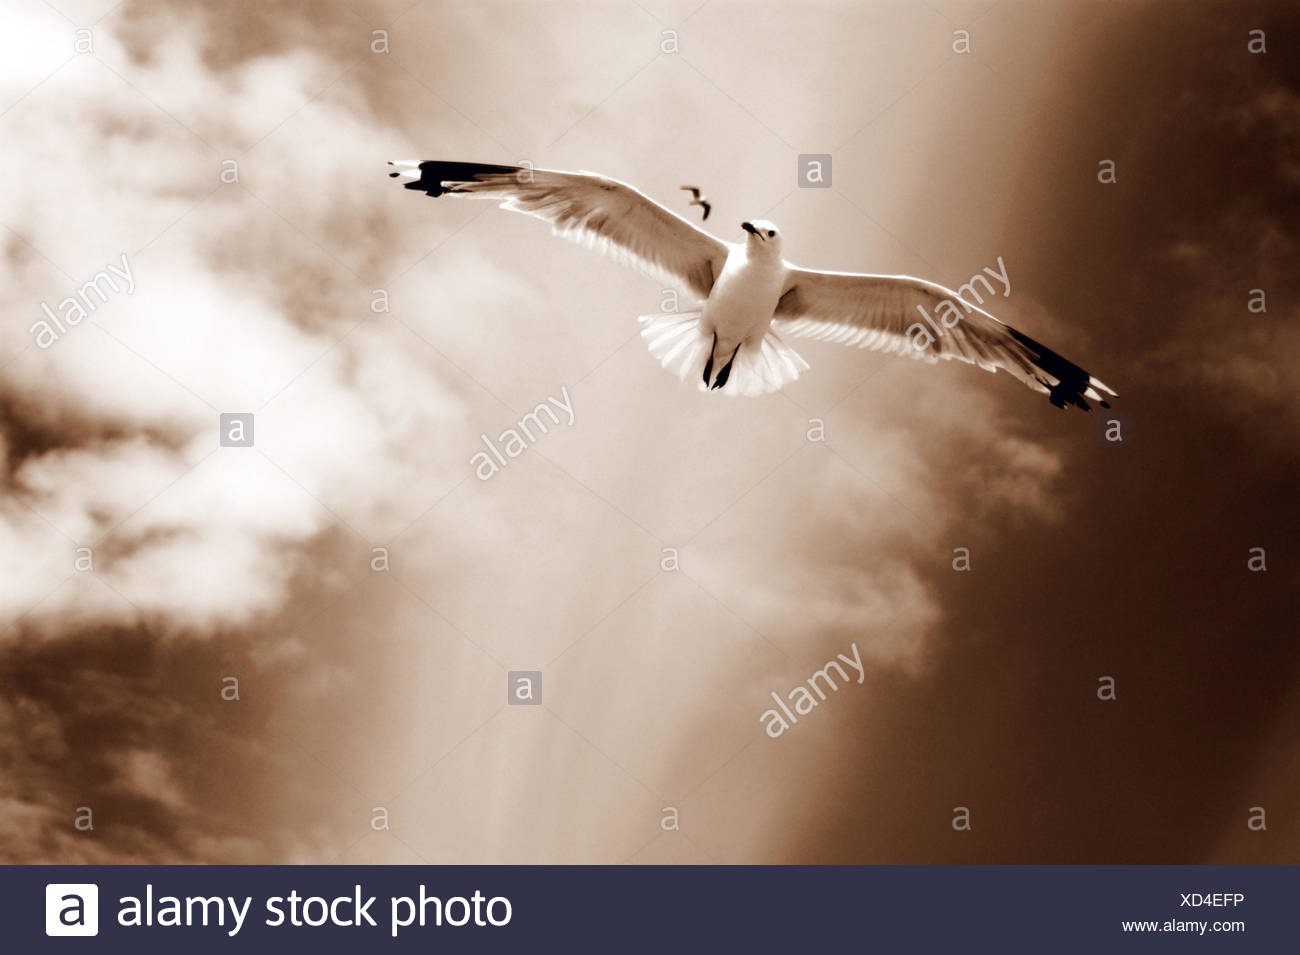 white sea gulls flying over the dunes in the sky in rich sepia tones, - Stock Image